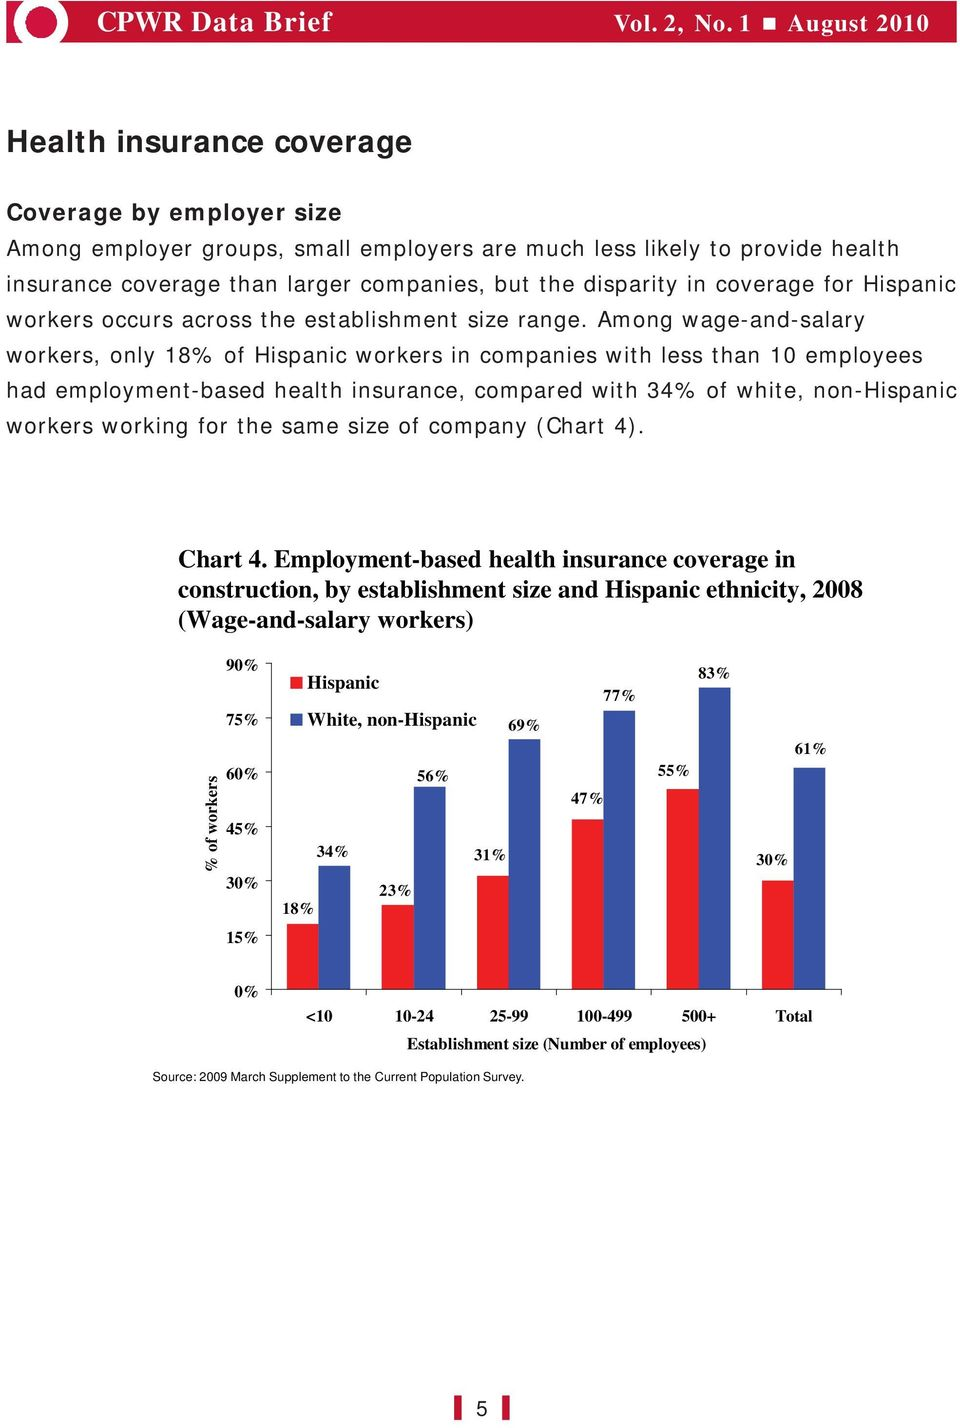 Among wage-and-salary workers, only 18% of workers in companies with less than 10 employees had employment-based health insurance, compared with 34% of white, non- workers working for the same size